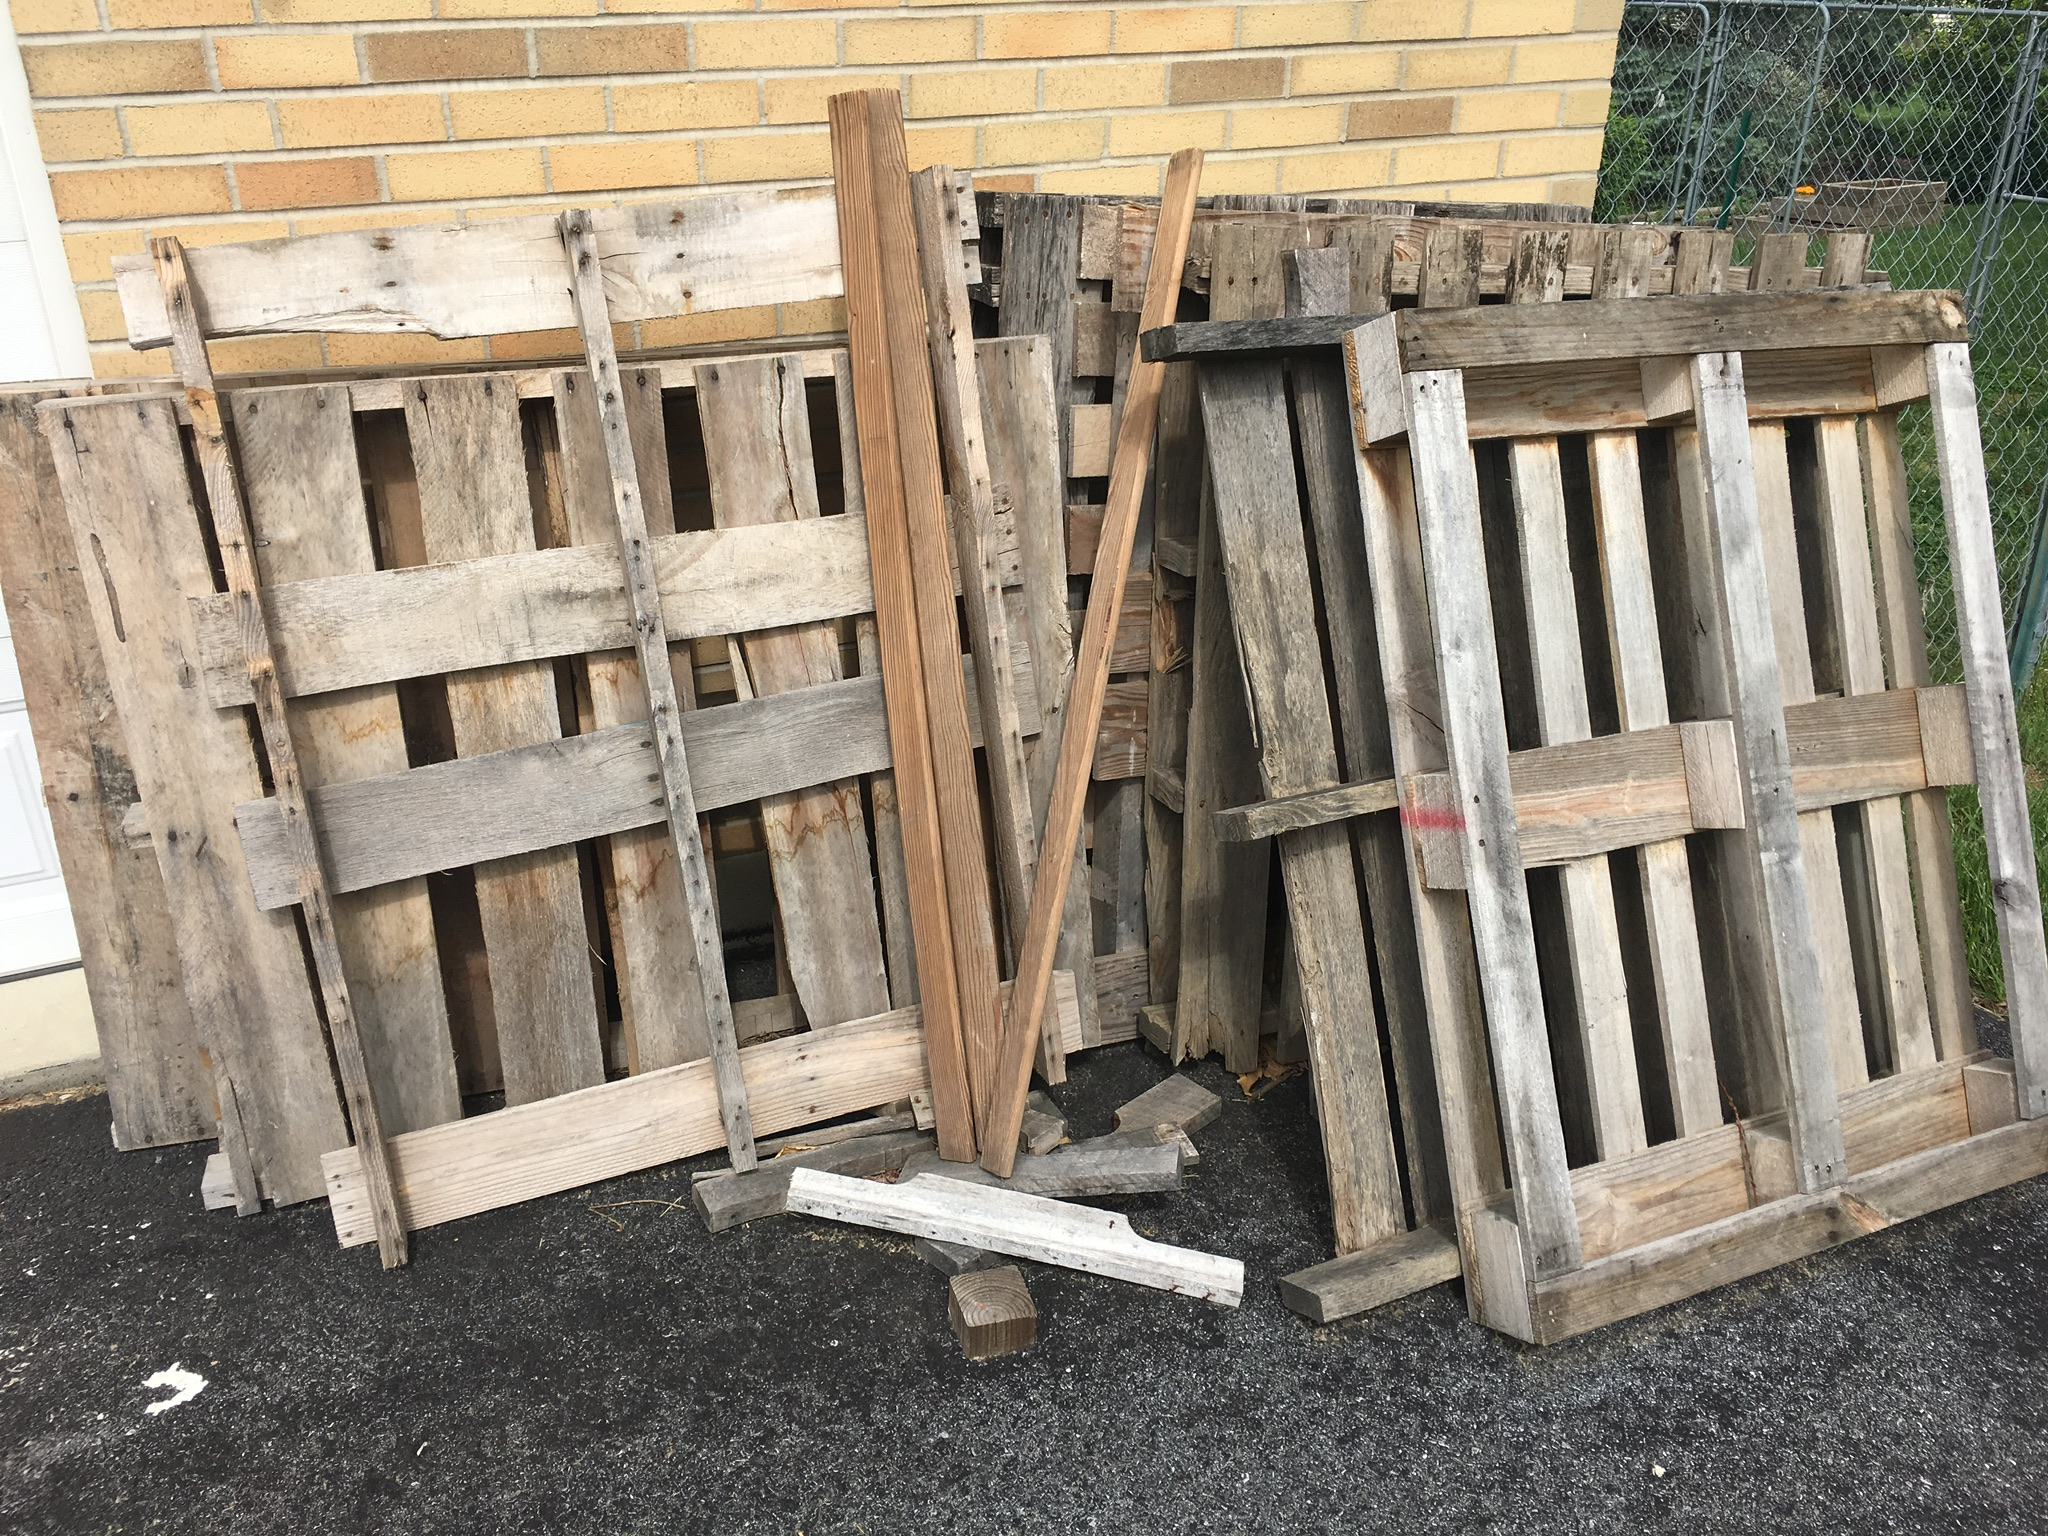 Old Furniture and Wood Pallets made into something new